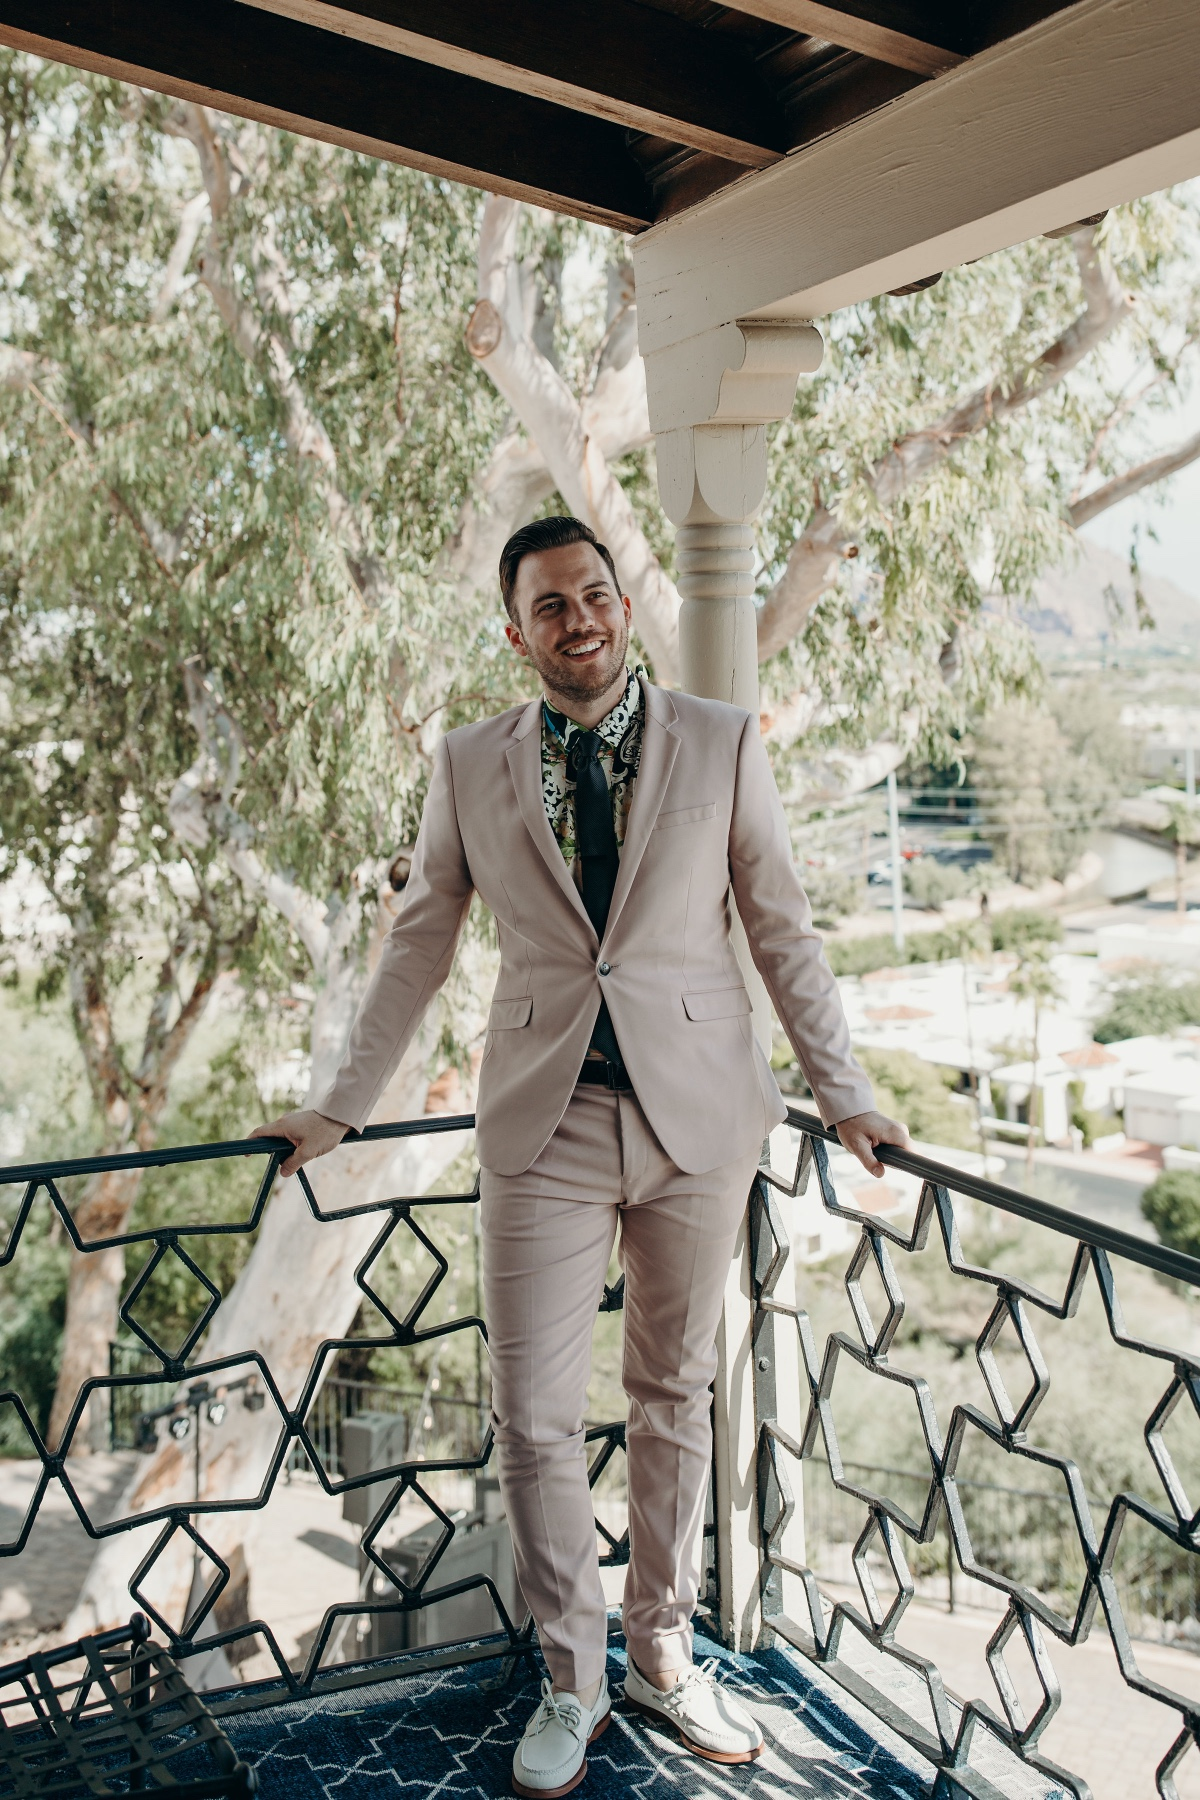 Pale blush suit for the groom